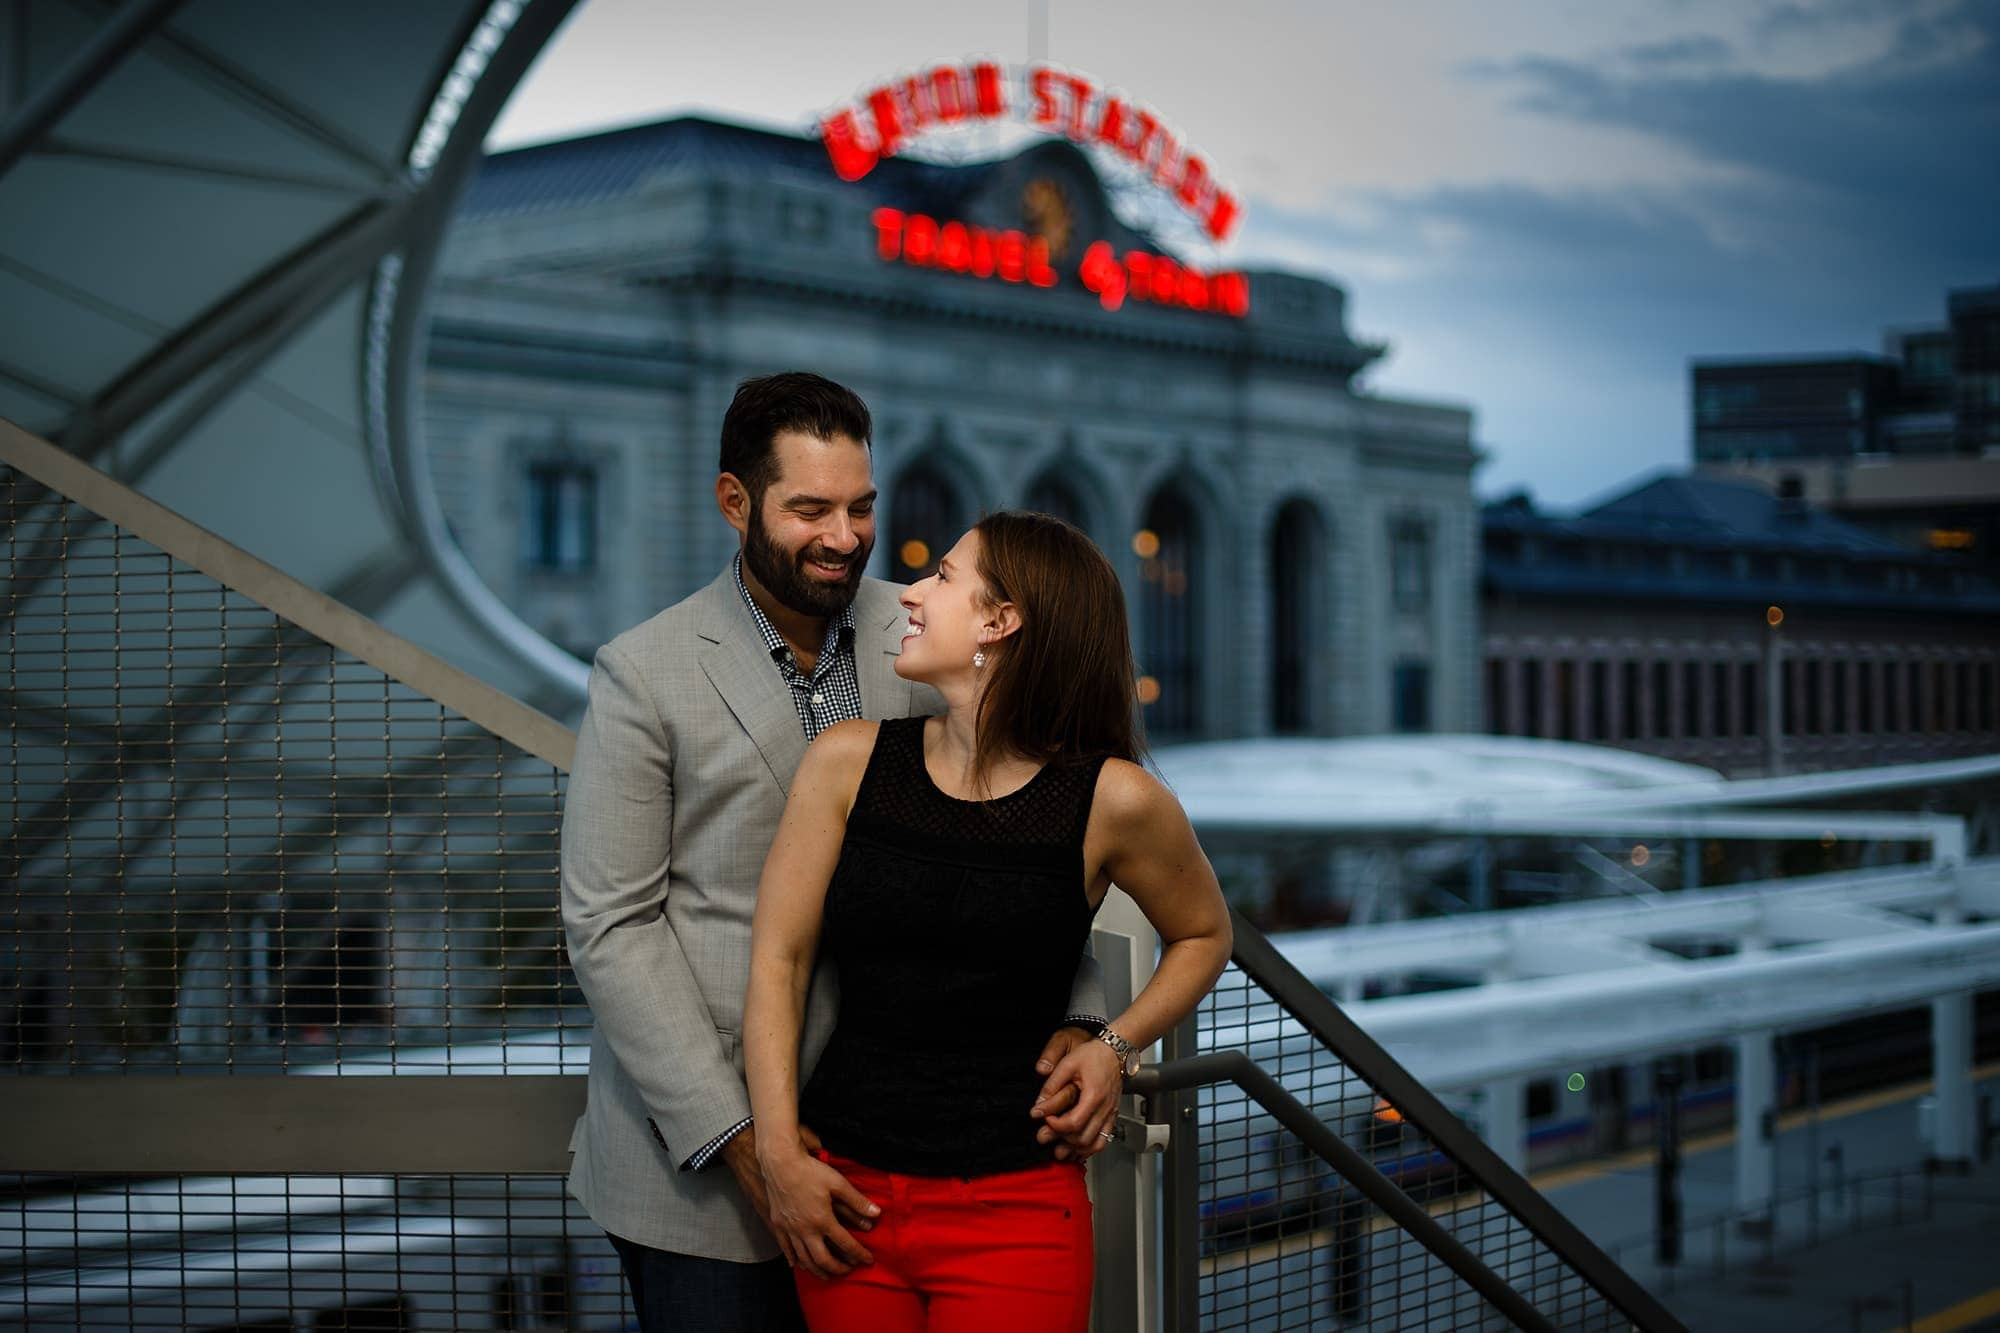 Devan and Josh are cute together at the Union Station Train Station in LoDo to celebrate their upcoming nuptials